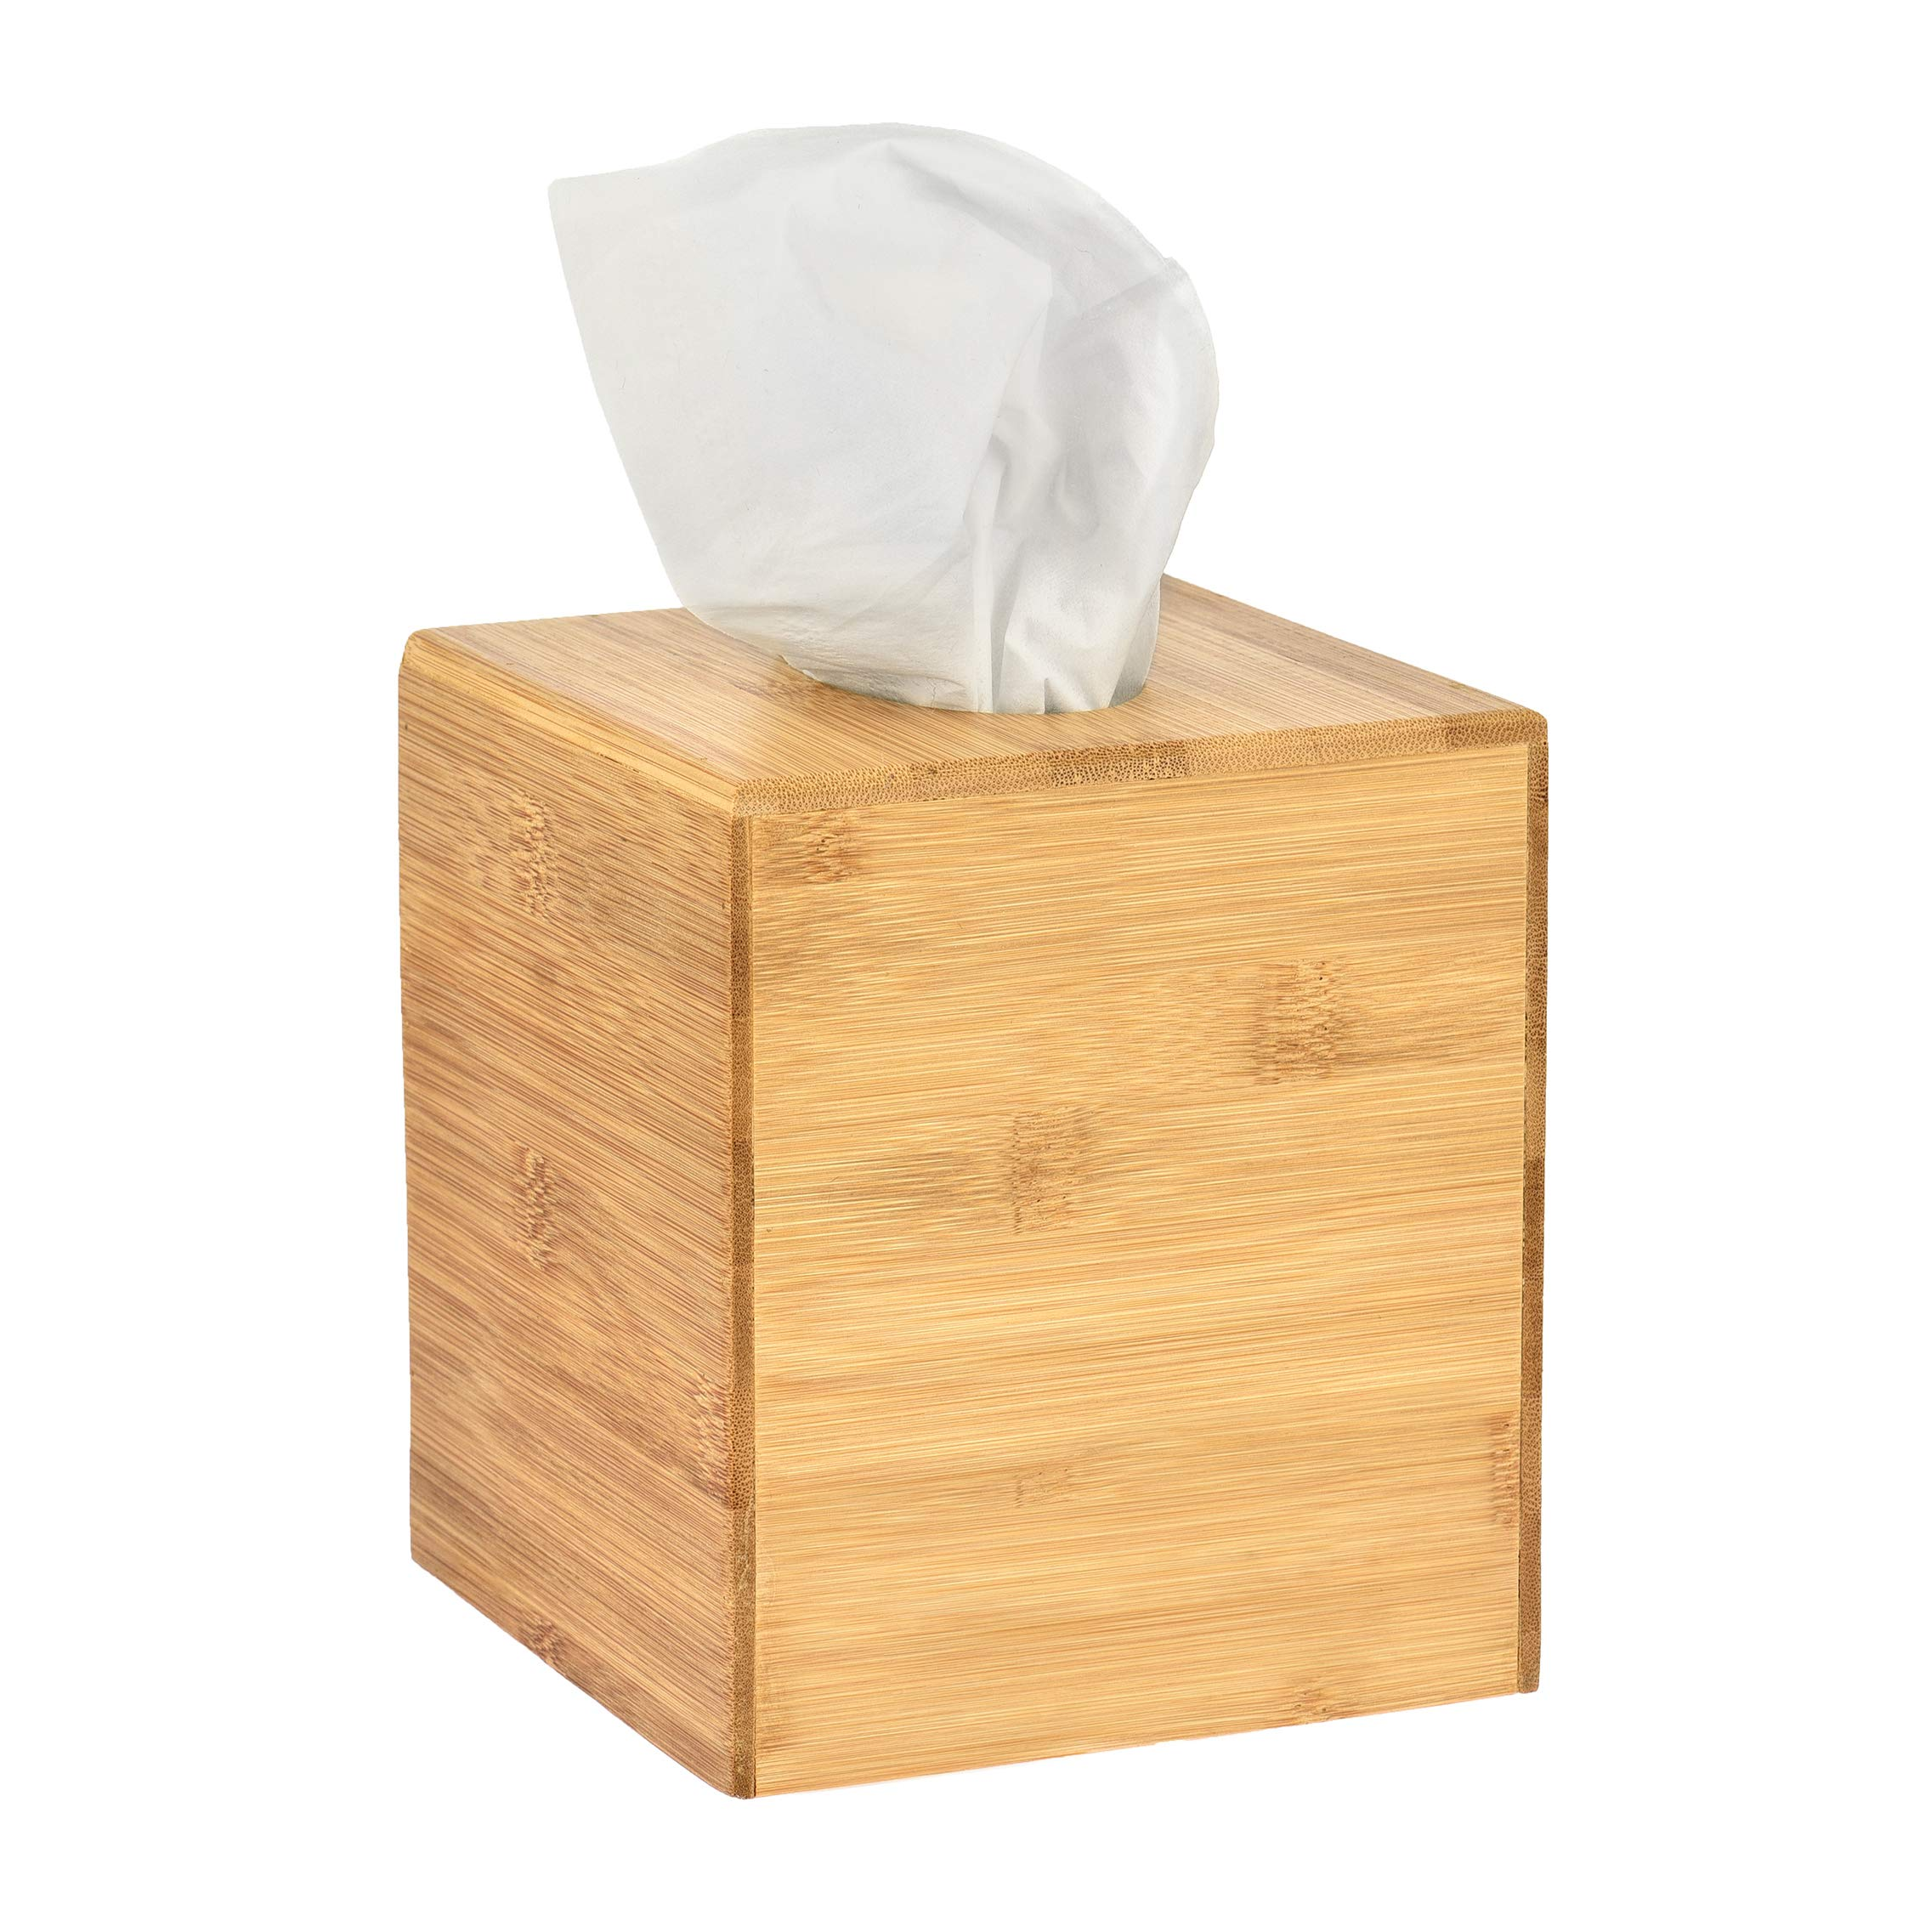 Alpine Industries Wooden Bamboo Square Tissue Box Cover - Eco Friendly Pull Cube Dispenser - Decorative Holder/Organizer for Bathroom, Office Desk & Car (Bamboo) by Alpine